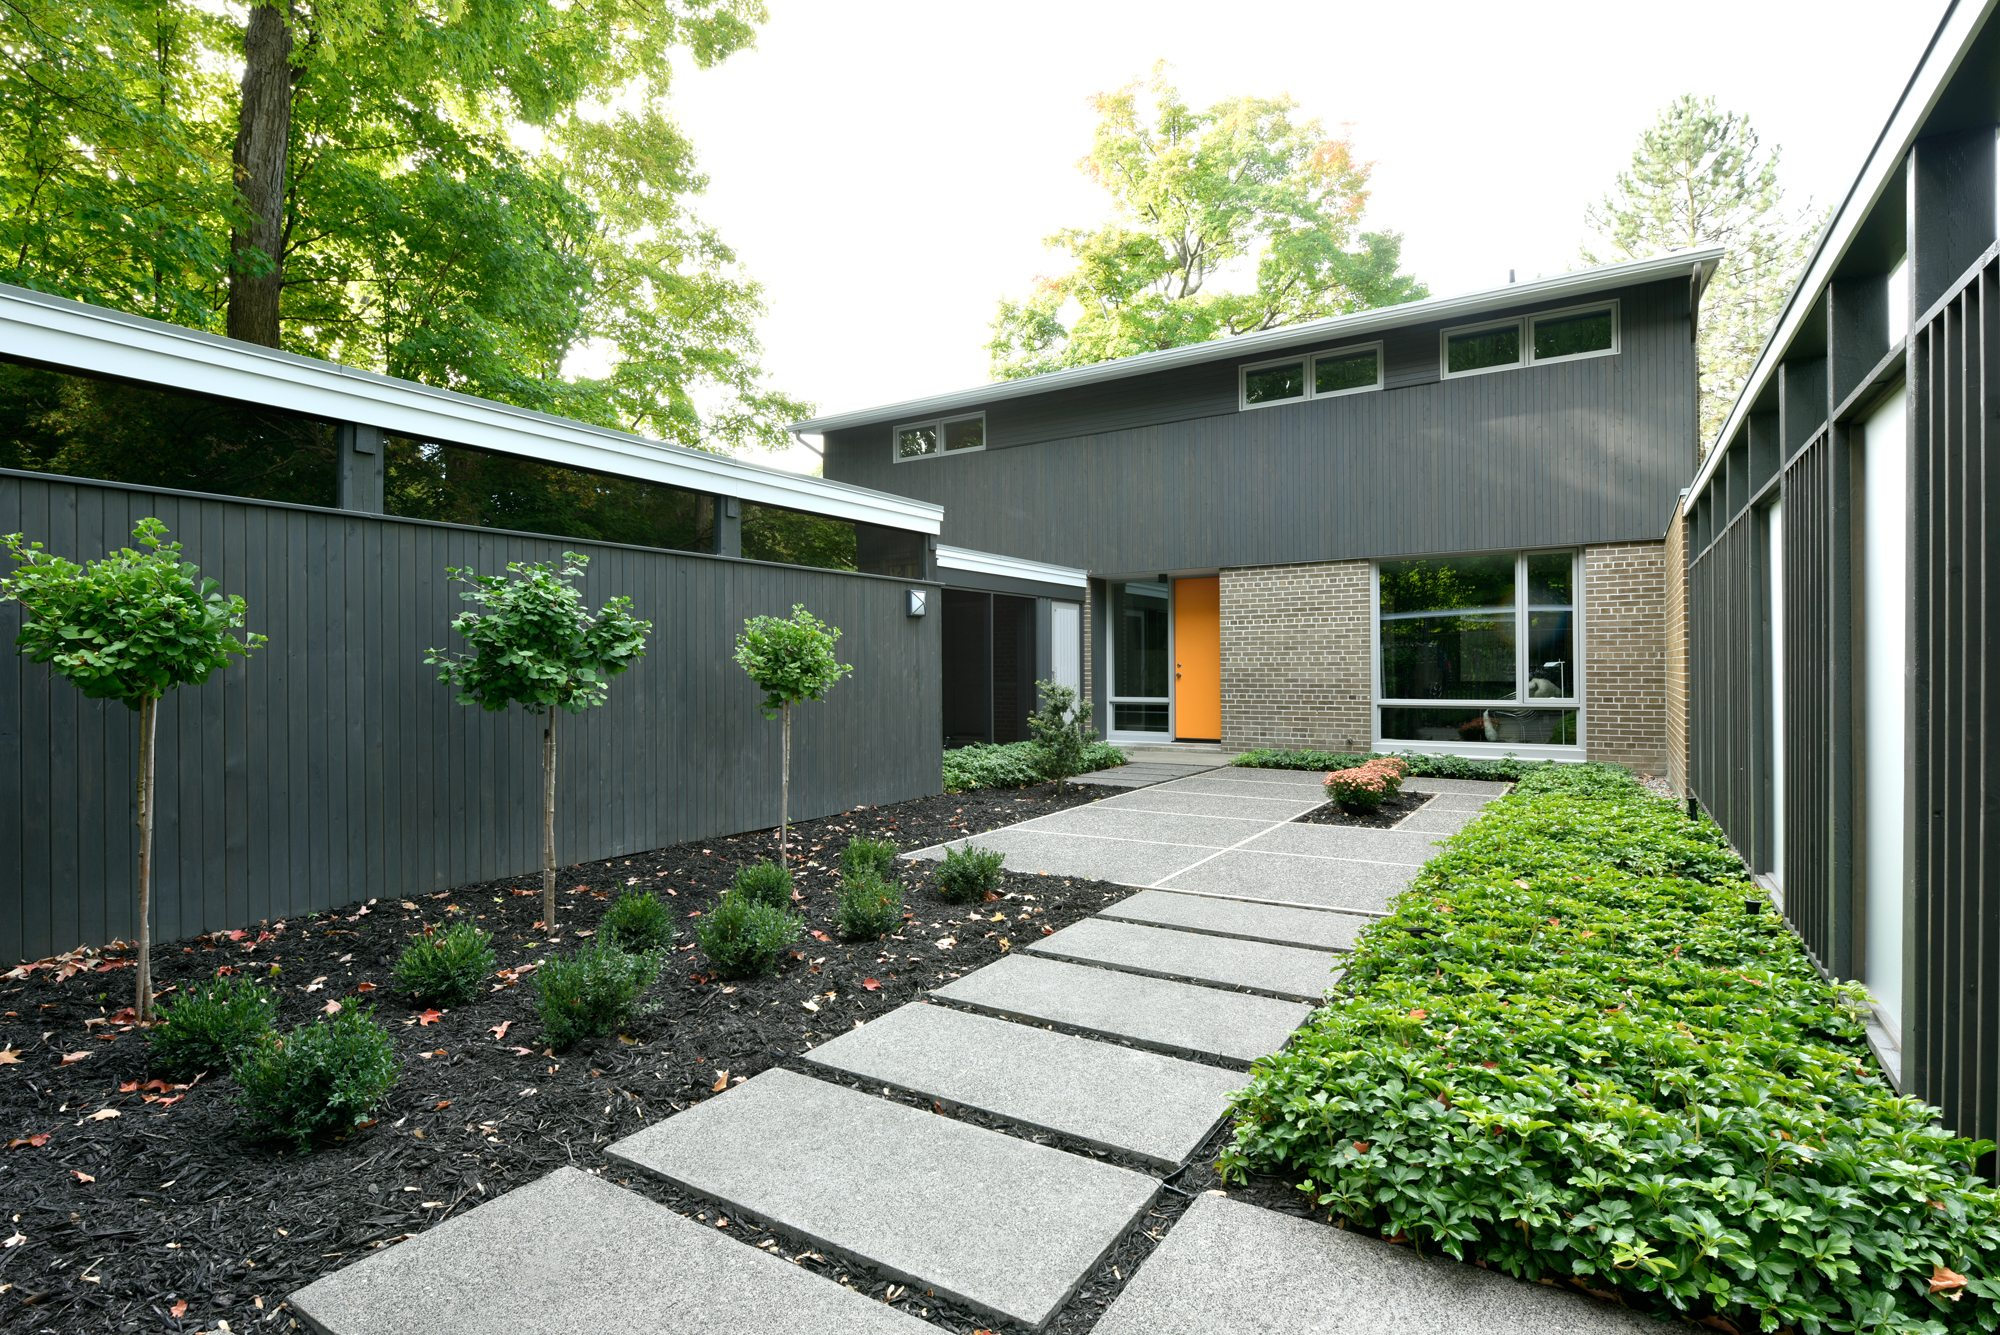 Above left The woodwork in the inner courtyard was transformed from dull brown to warm grey, translucent panels were installed in the fence, and the garden was simplified to present a modern entryway to the house. Photos: Gordon King